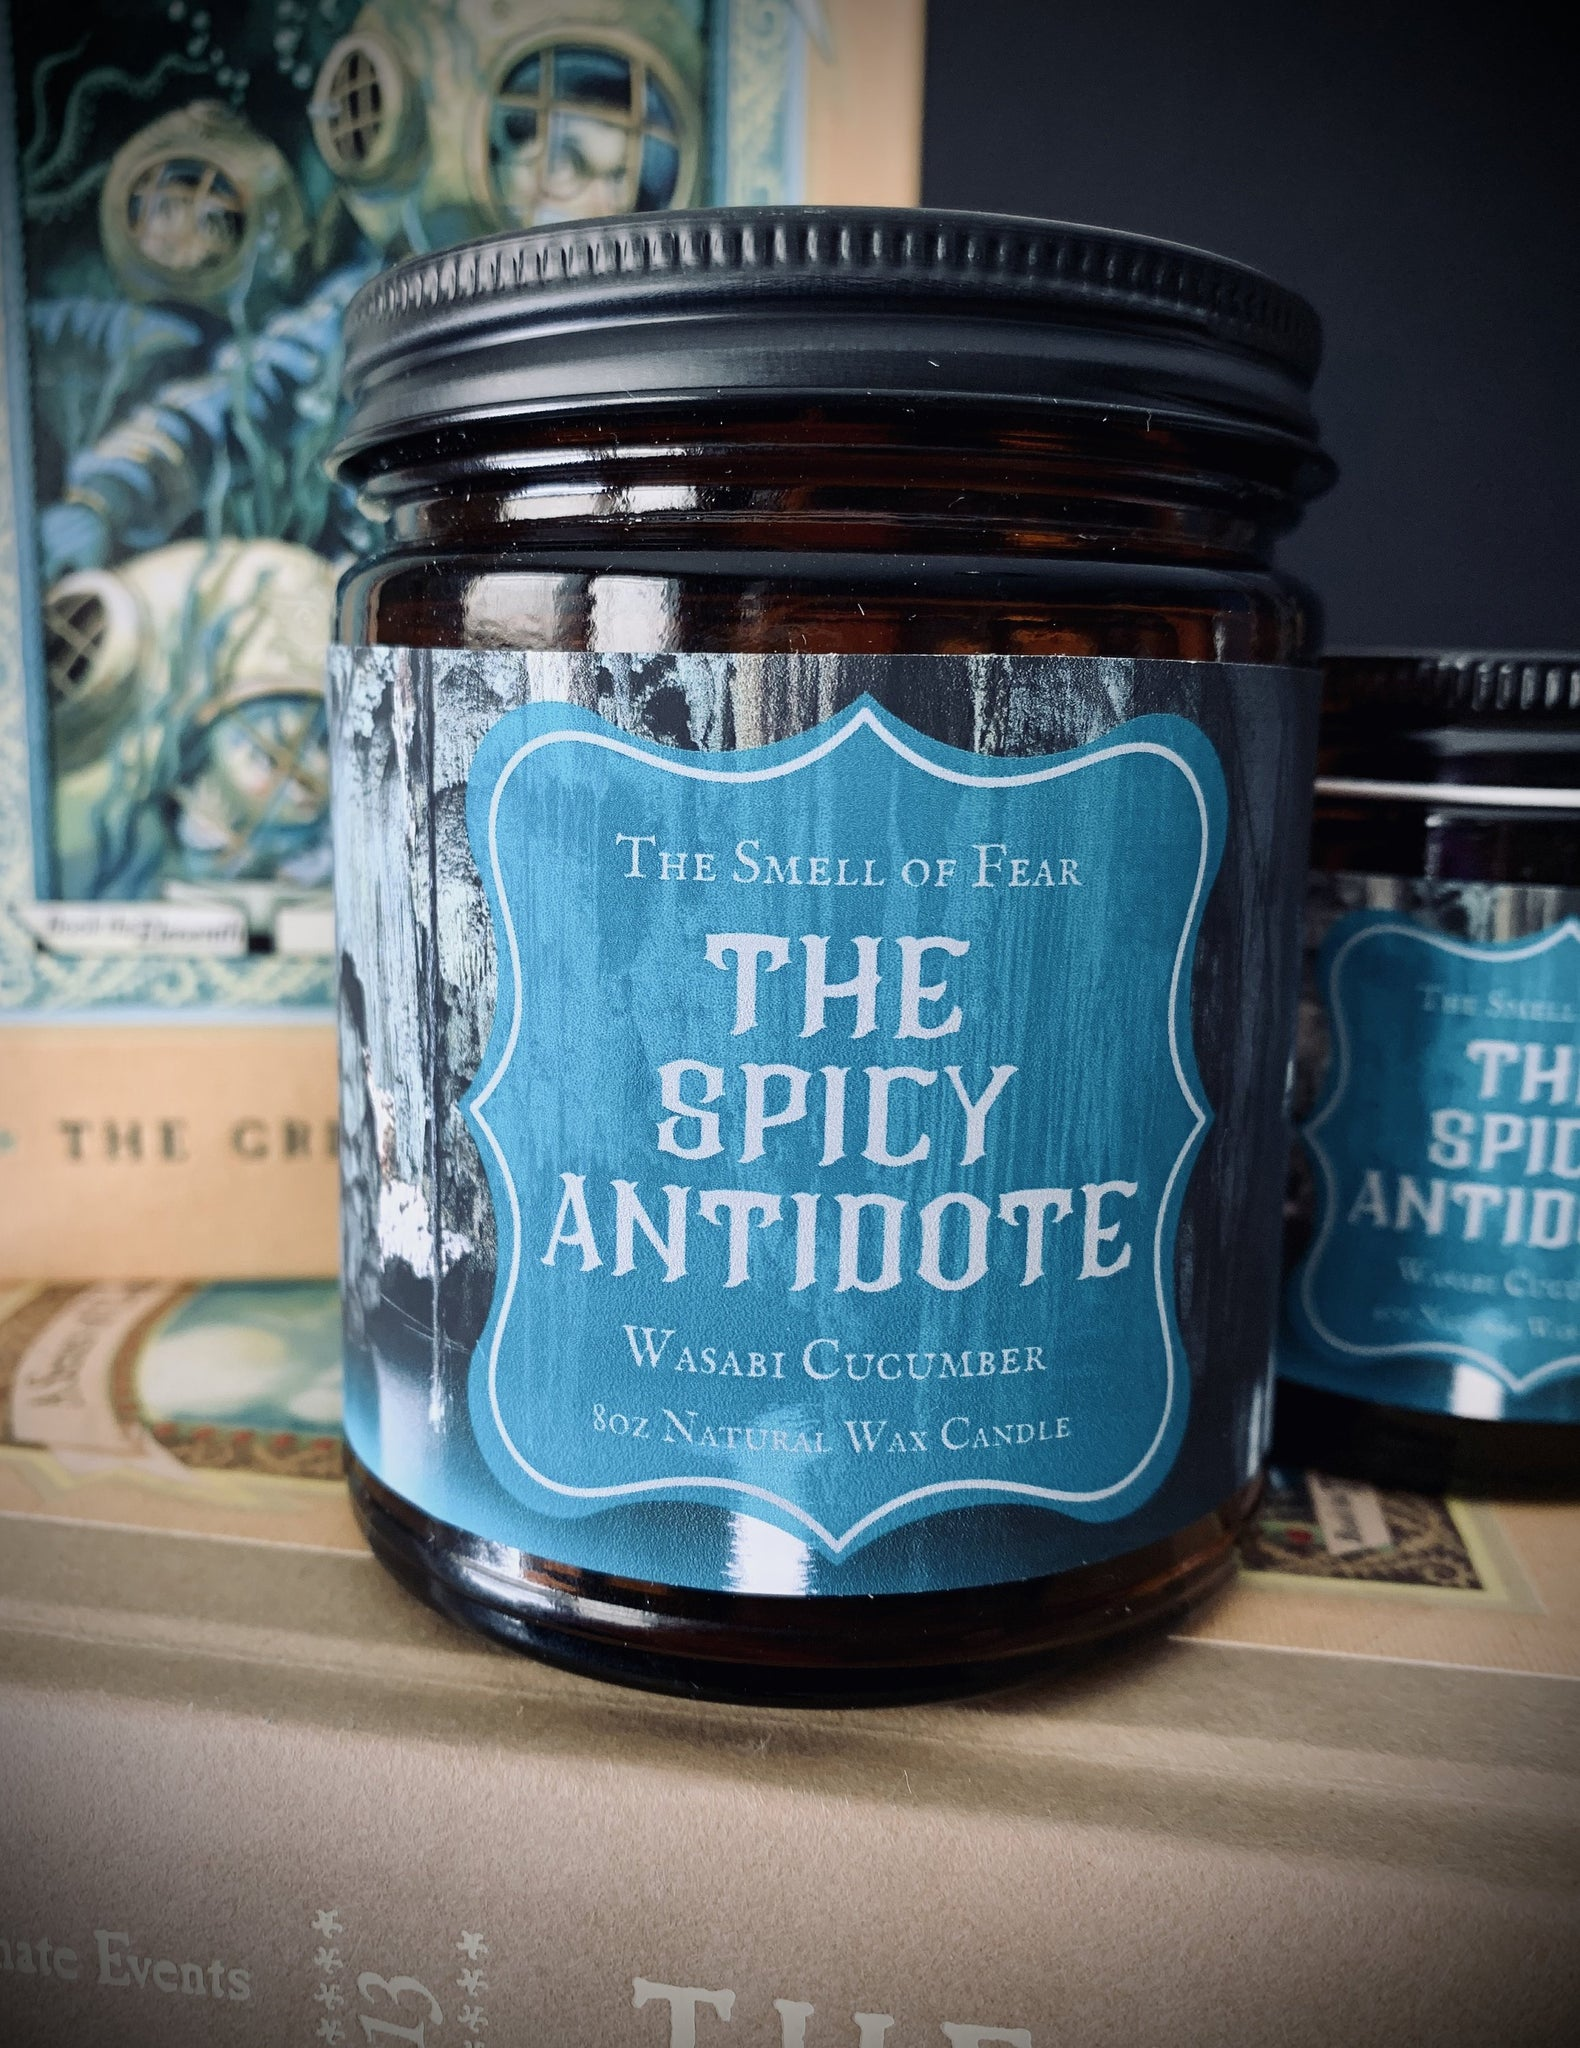 The Spicy Antidote * Cucumber/Wasabi Scent * Lemony Snicket Series Inspired * Natural Wax Blend